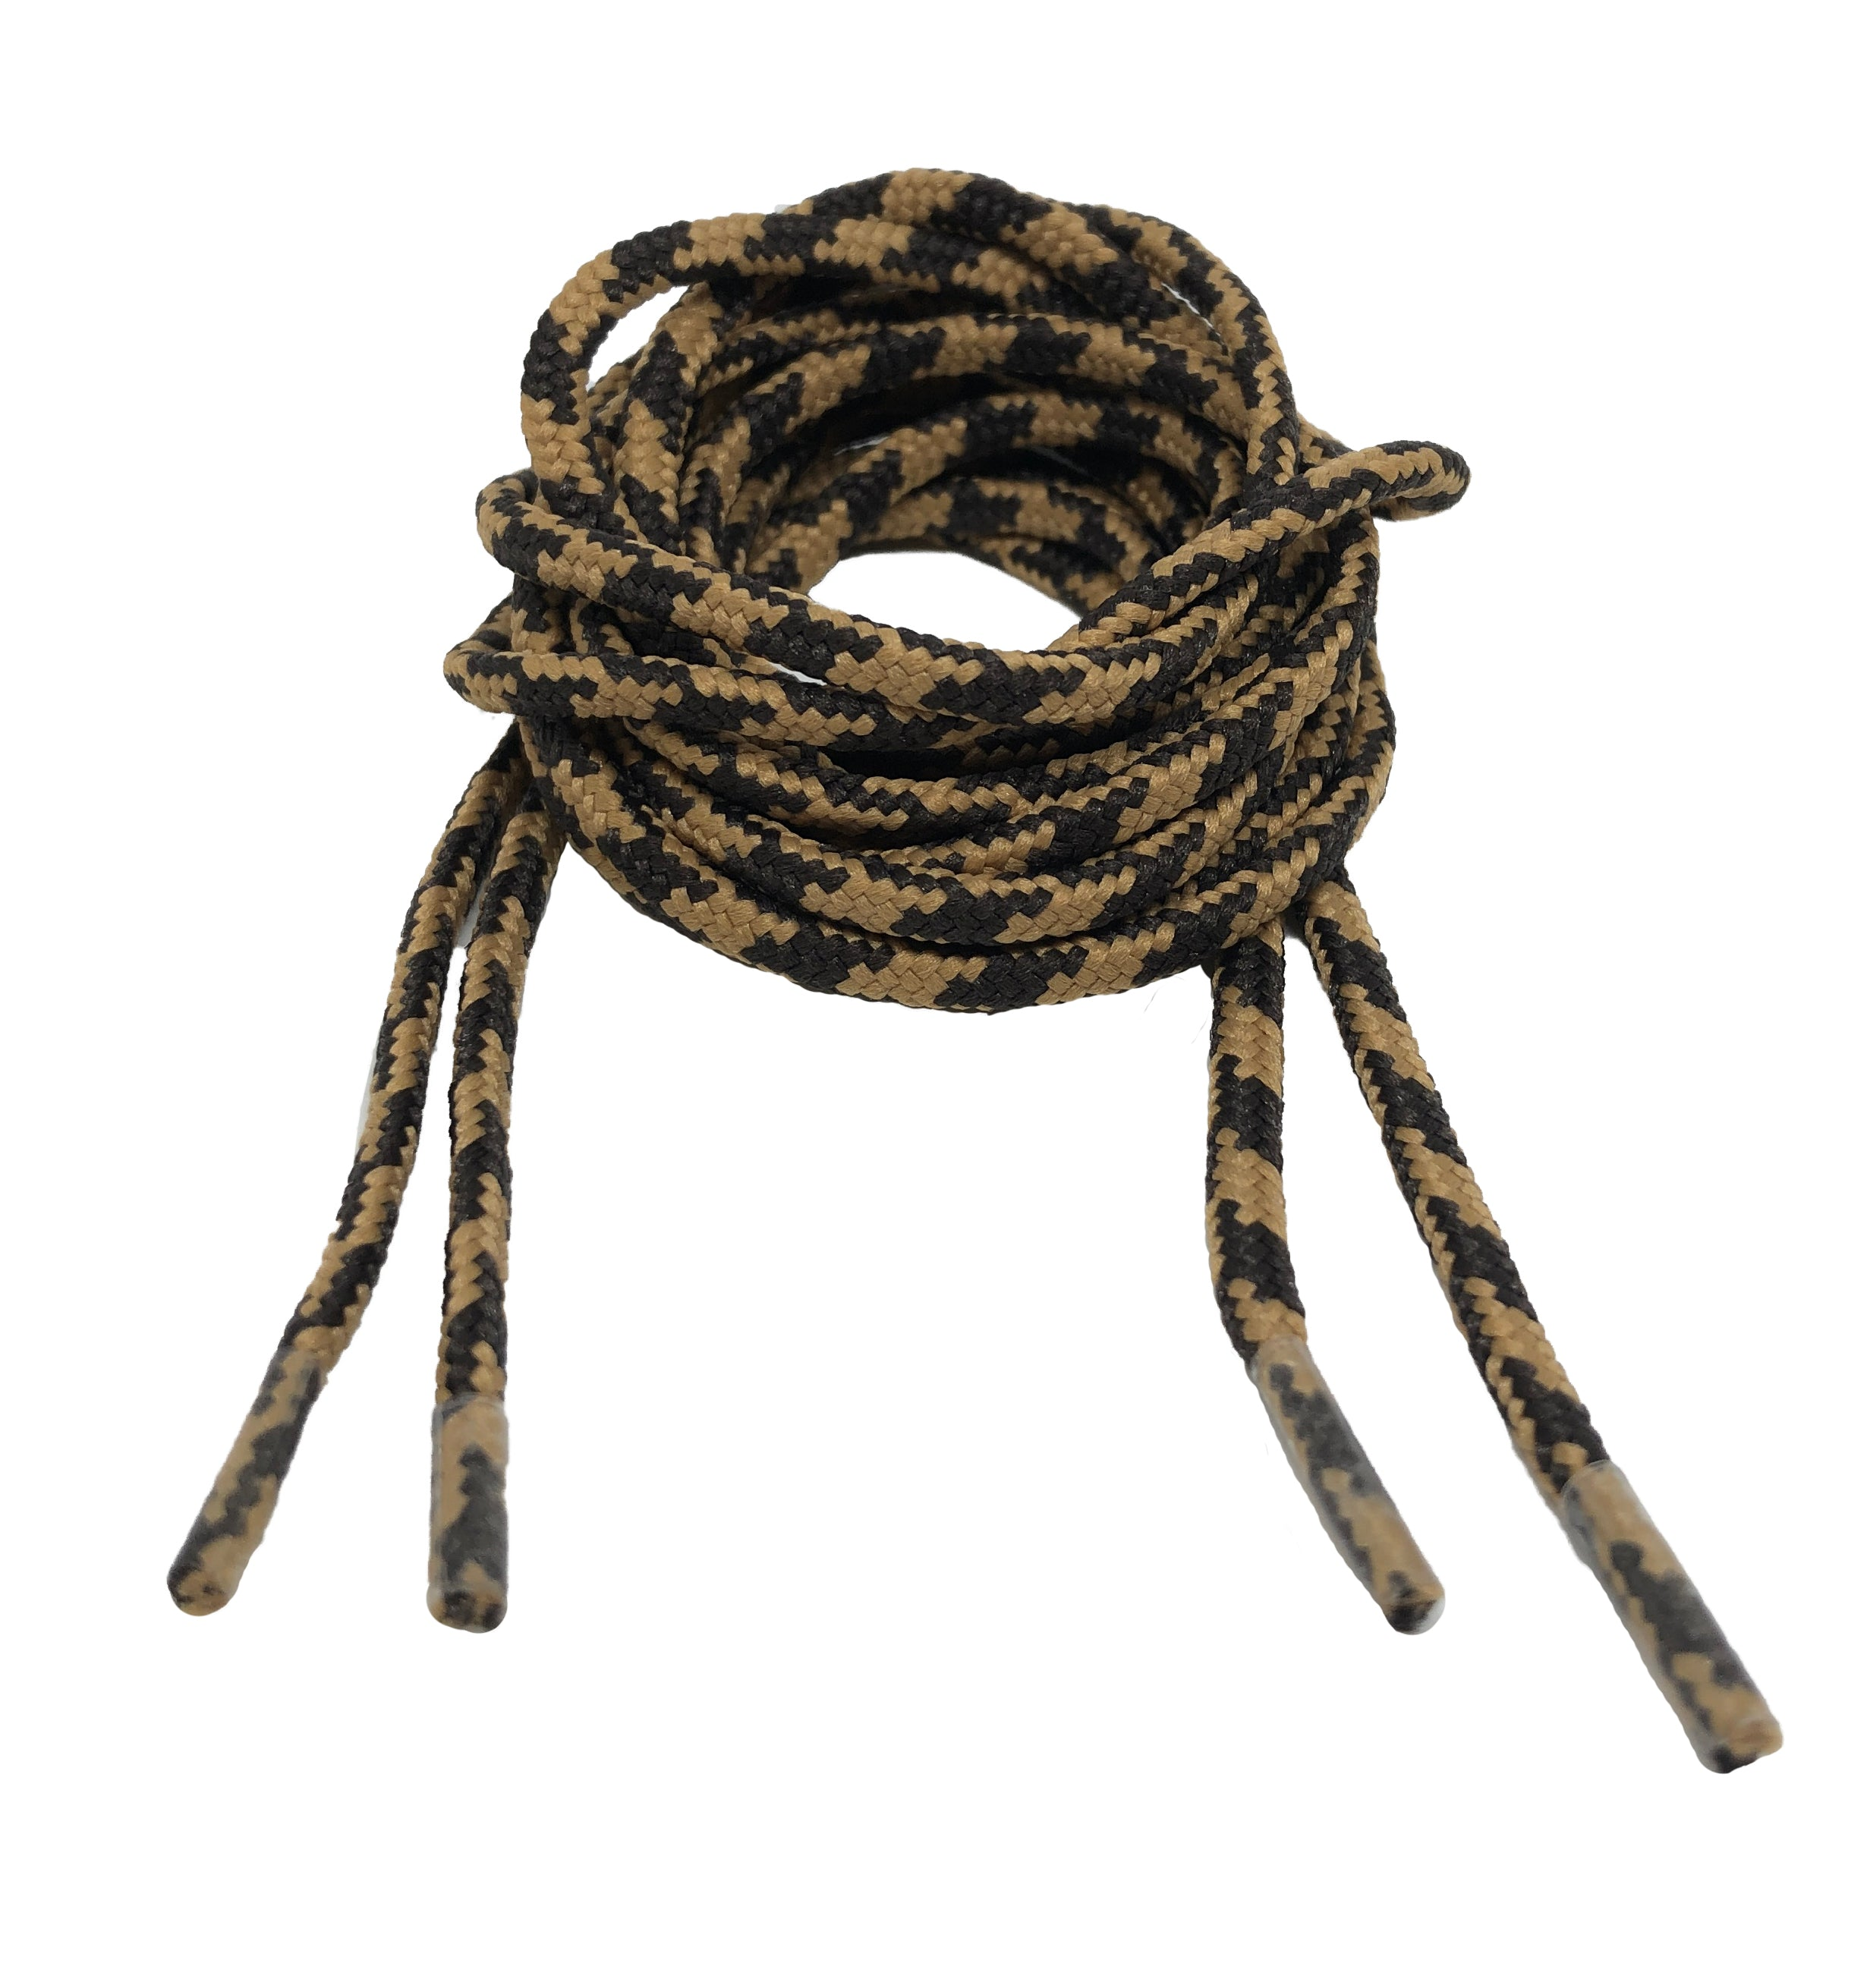 Round Patterned Strong Shoelaces/Bootlaces Brown Light Brown - 4mm wide